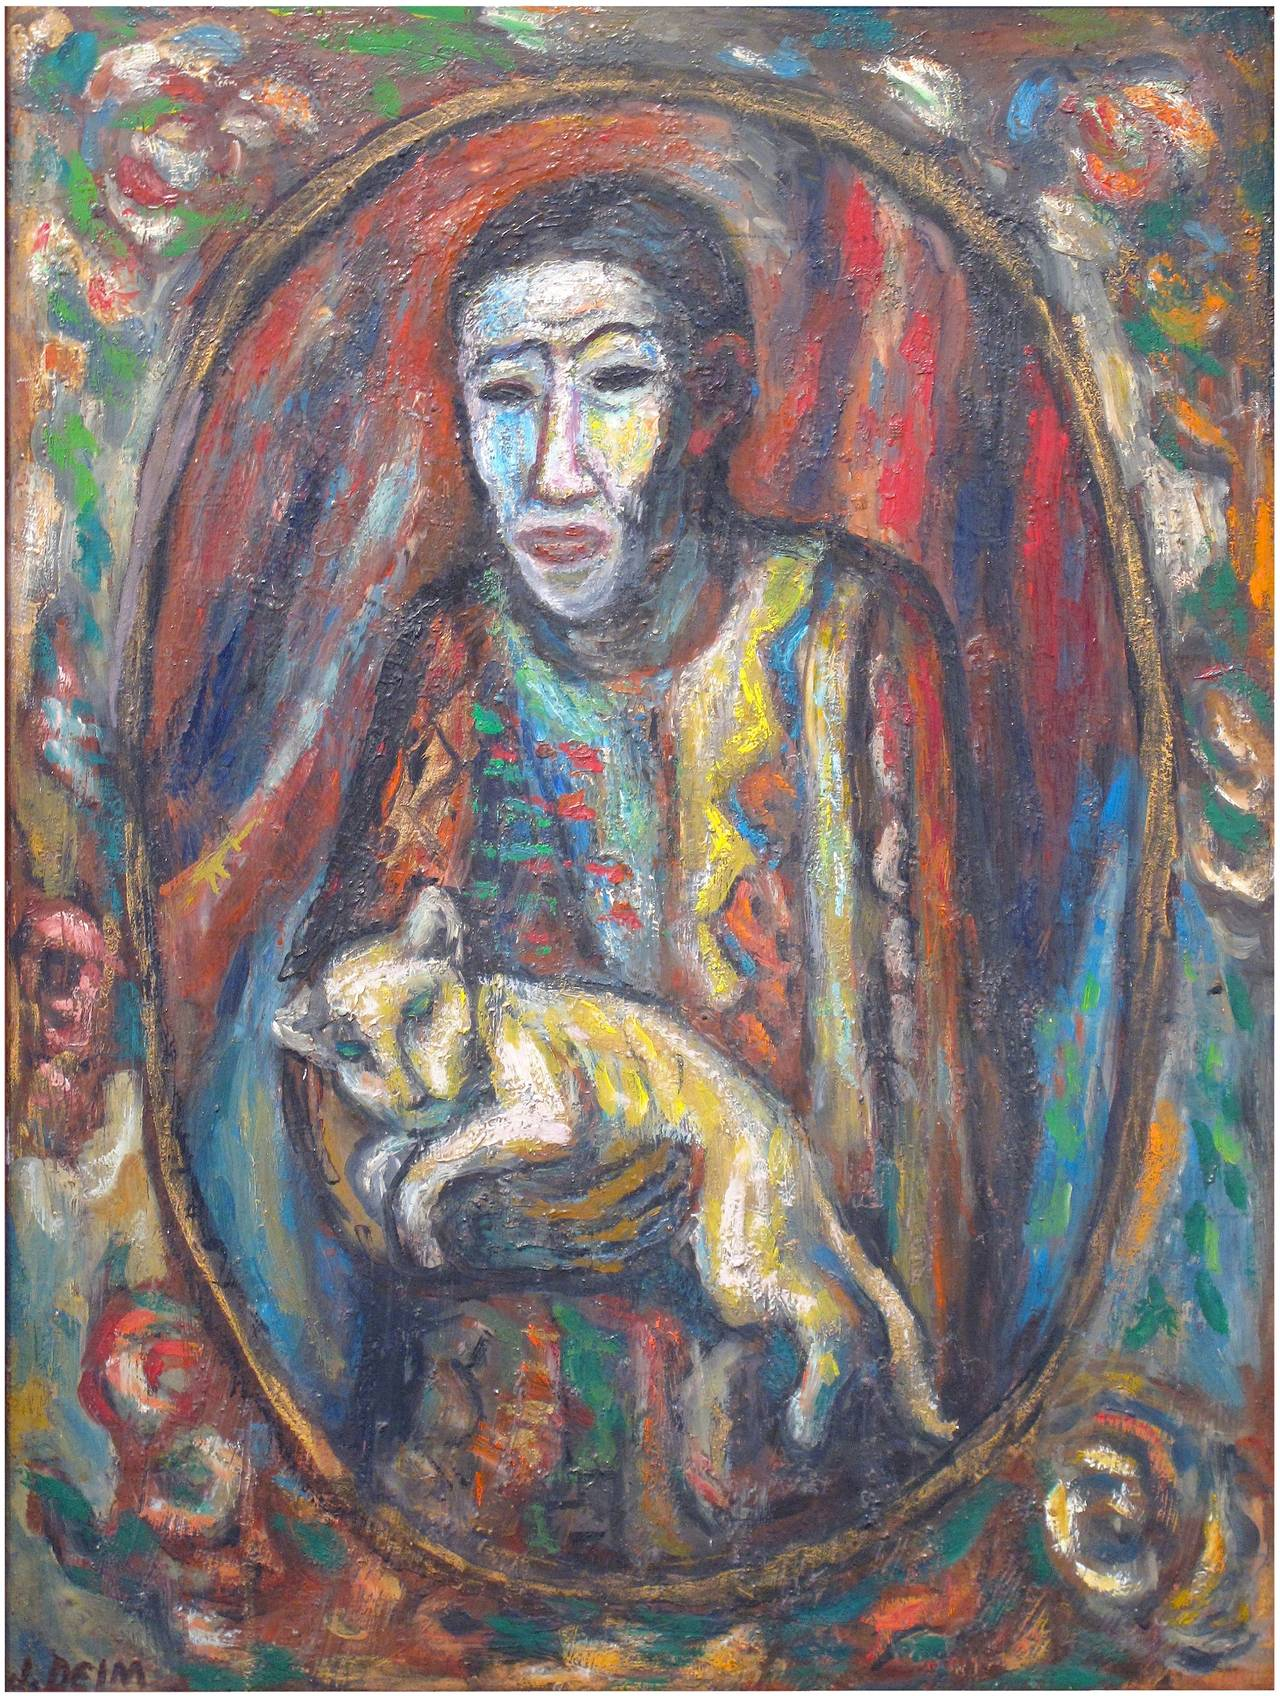 Self-Portrait with Cat - Painting by Judith Deim